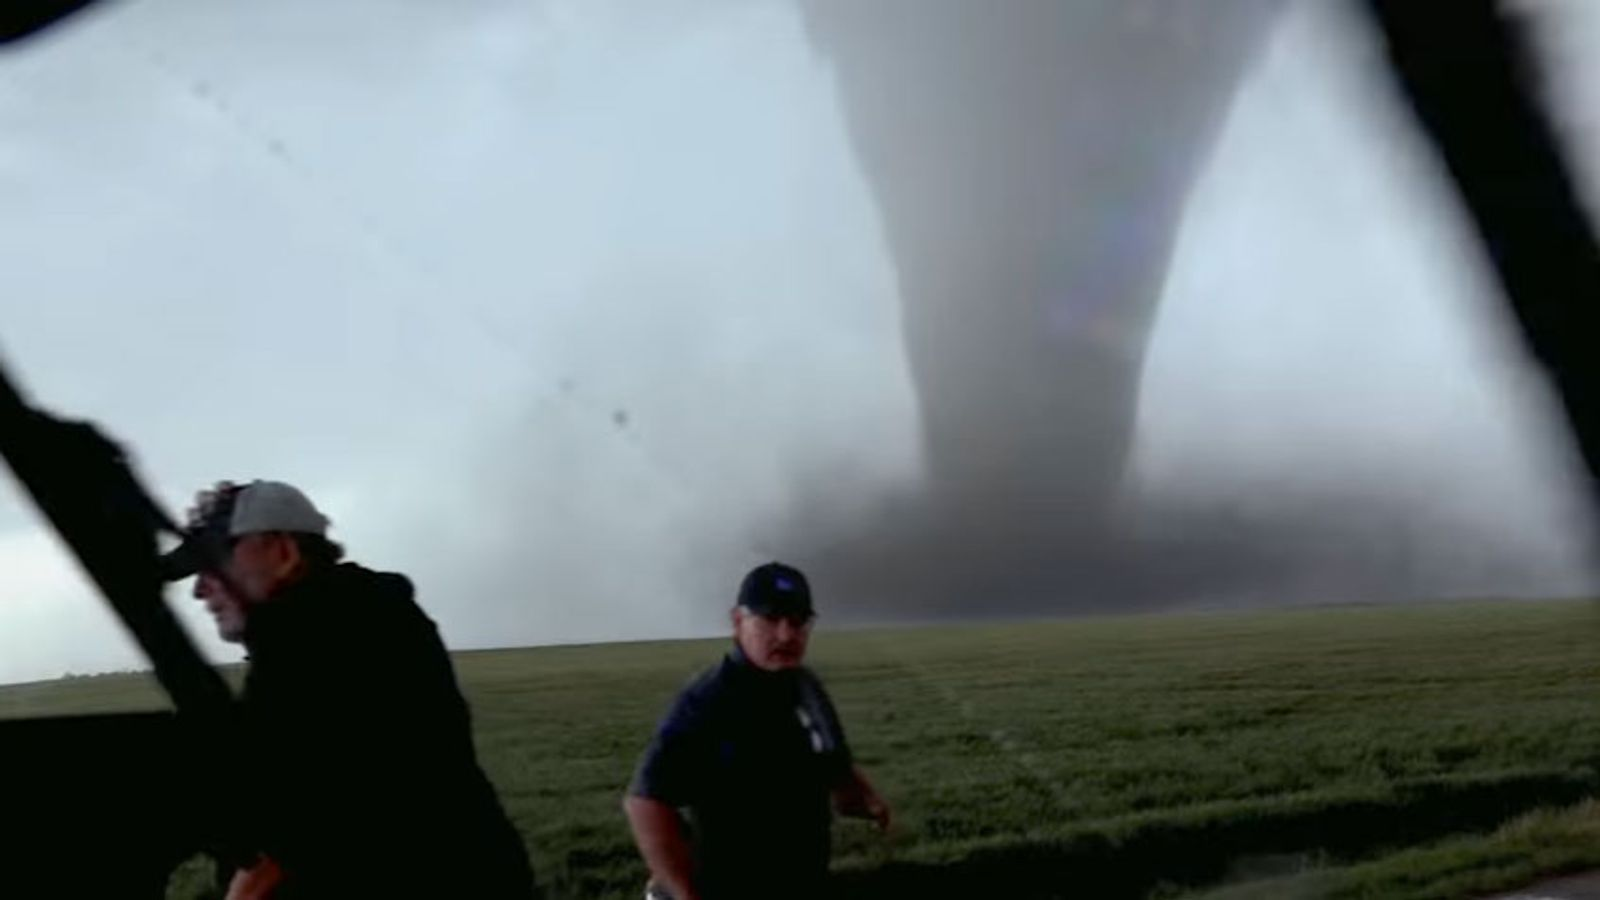 storm chasers tracking texas tornado killed in car crash